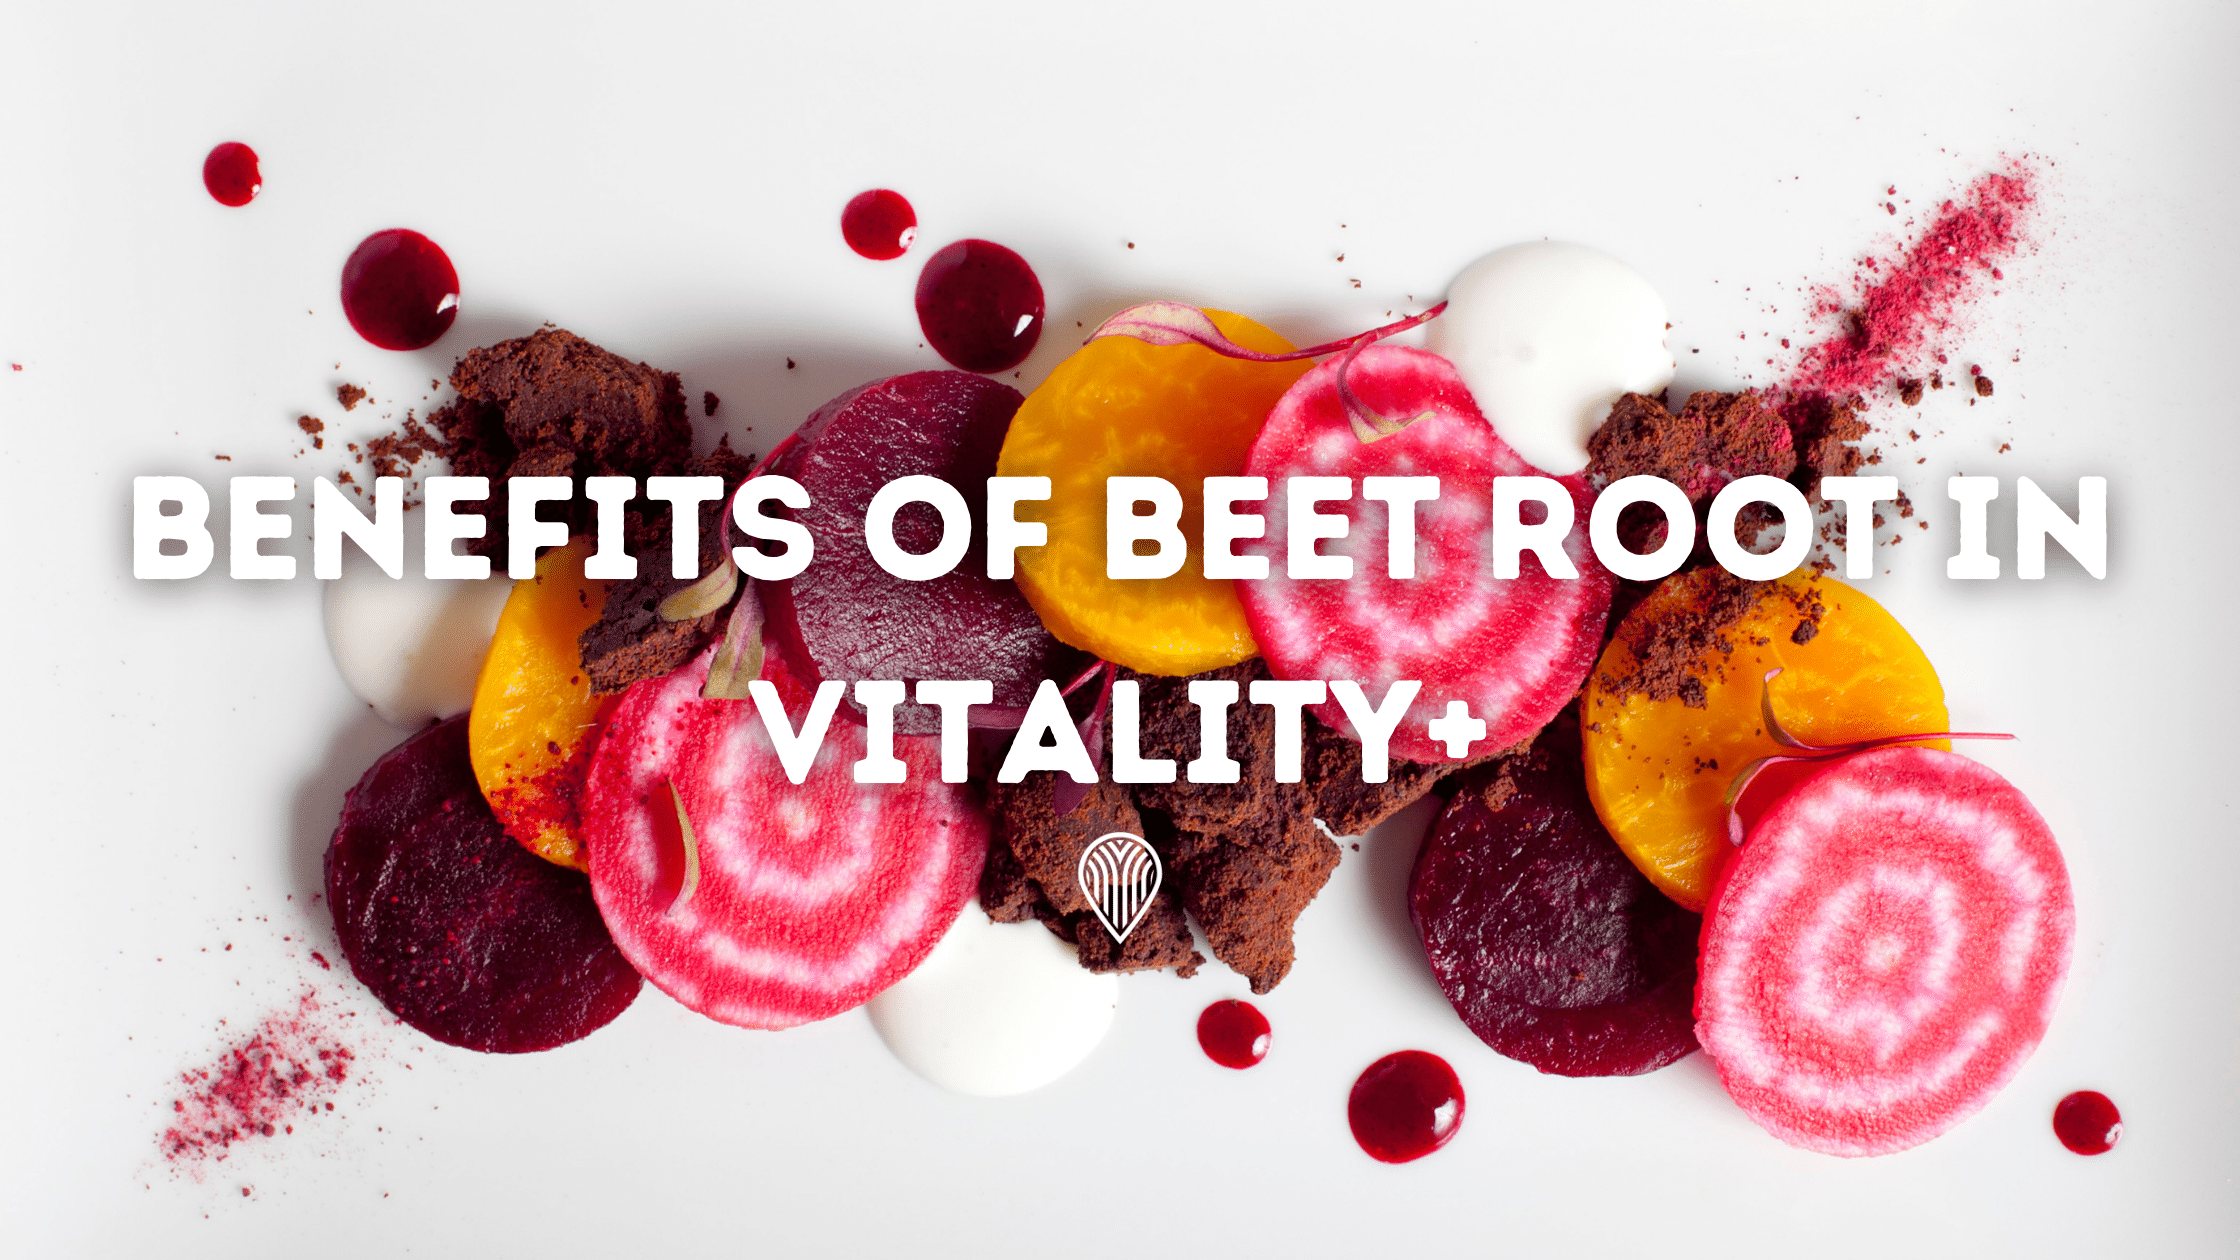 Benefits of Beet root in Vitality+